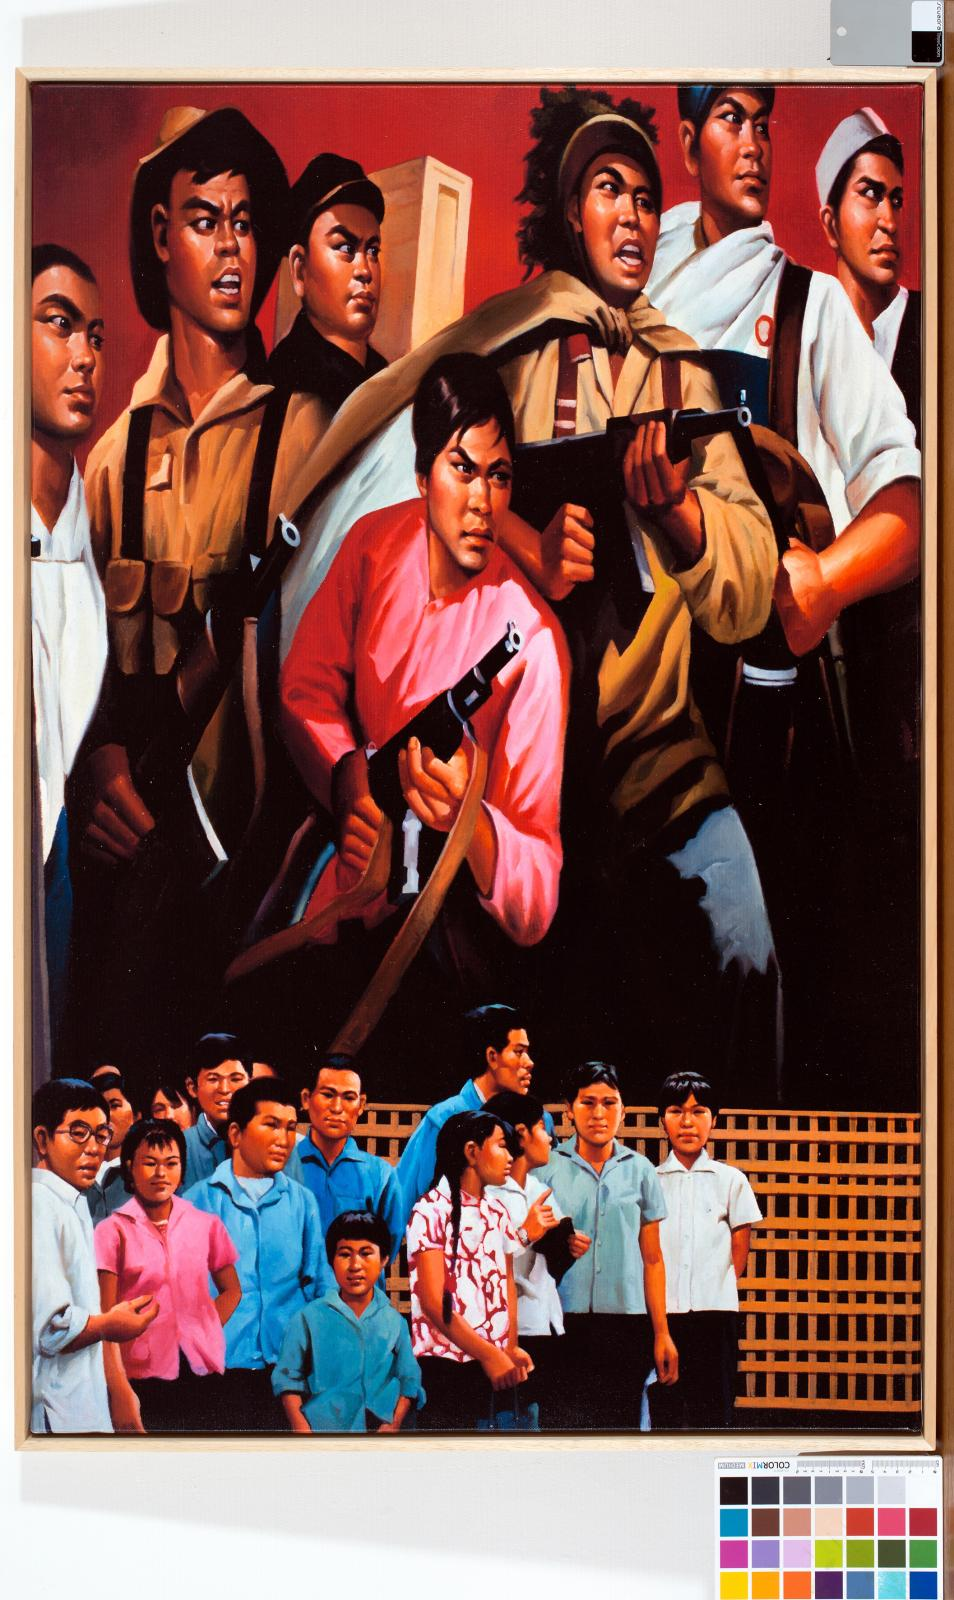 1967. The Long Trip of Mao - Before Living PekingSérie « Chinese Paintings » (1974-1975), 2017, digigraphie sur toile, 100x68cm.